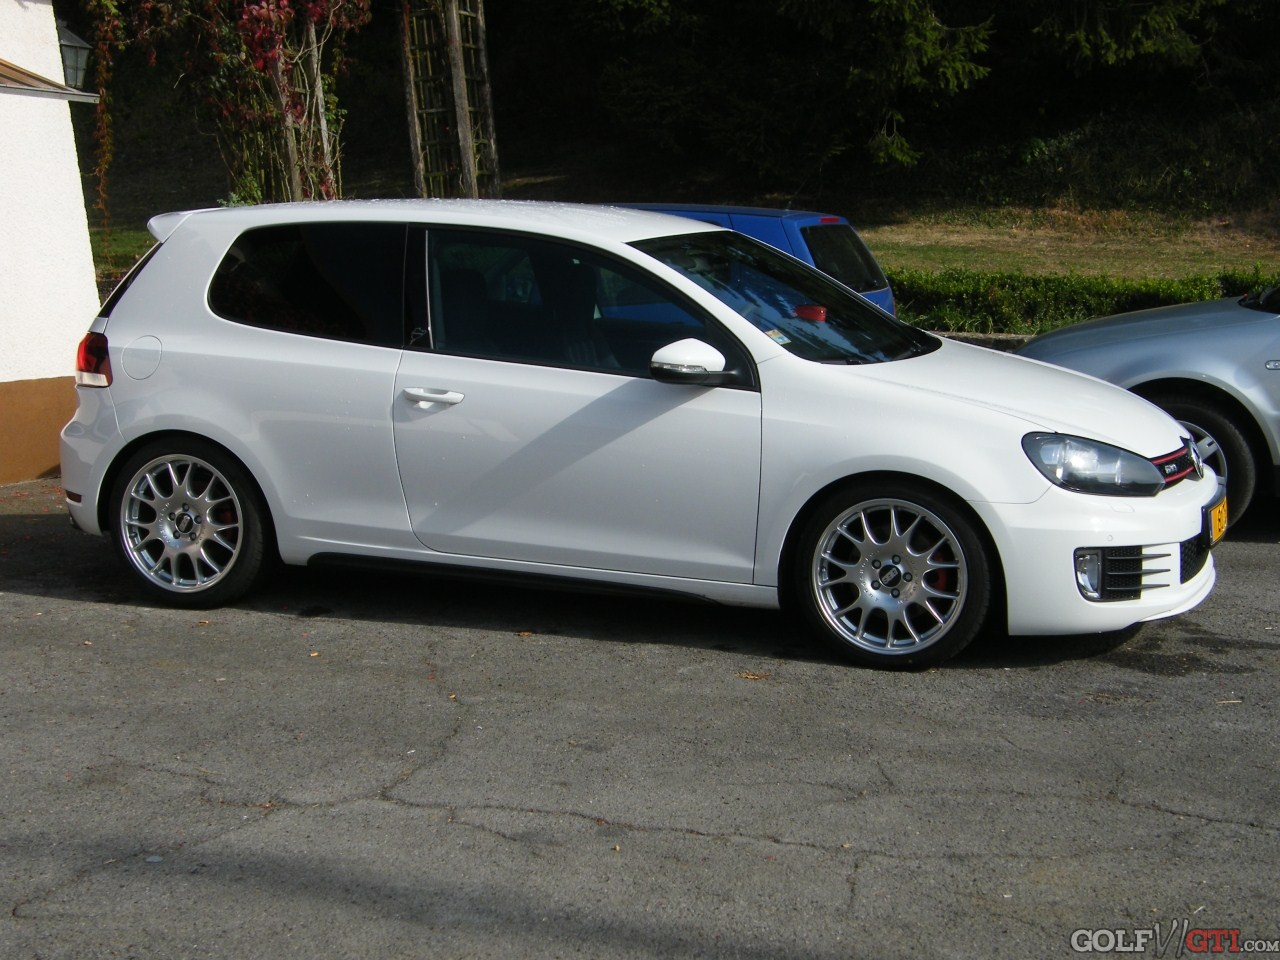 suche bilder von weissem gti mit 19 bbs ch golf vi gti community forum. Black Bedroom Furniture Sets. Home Design Ideas